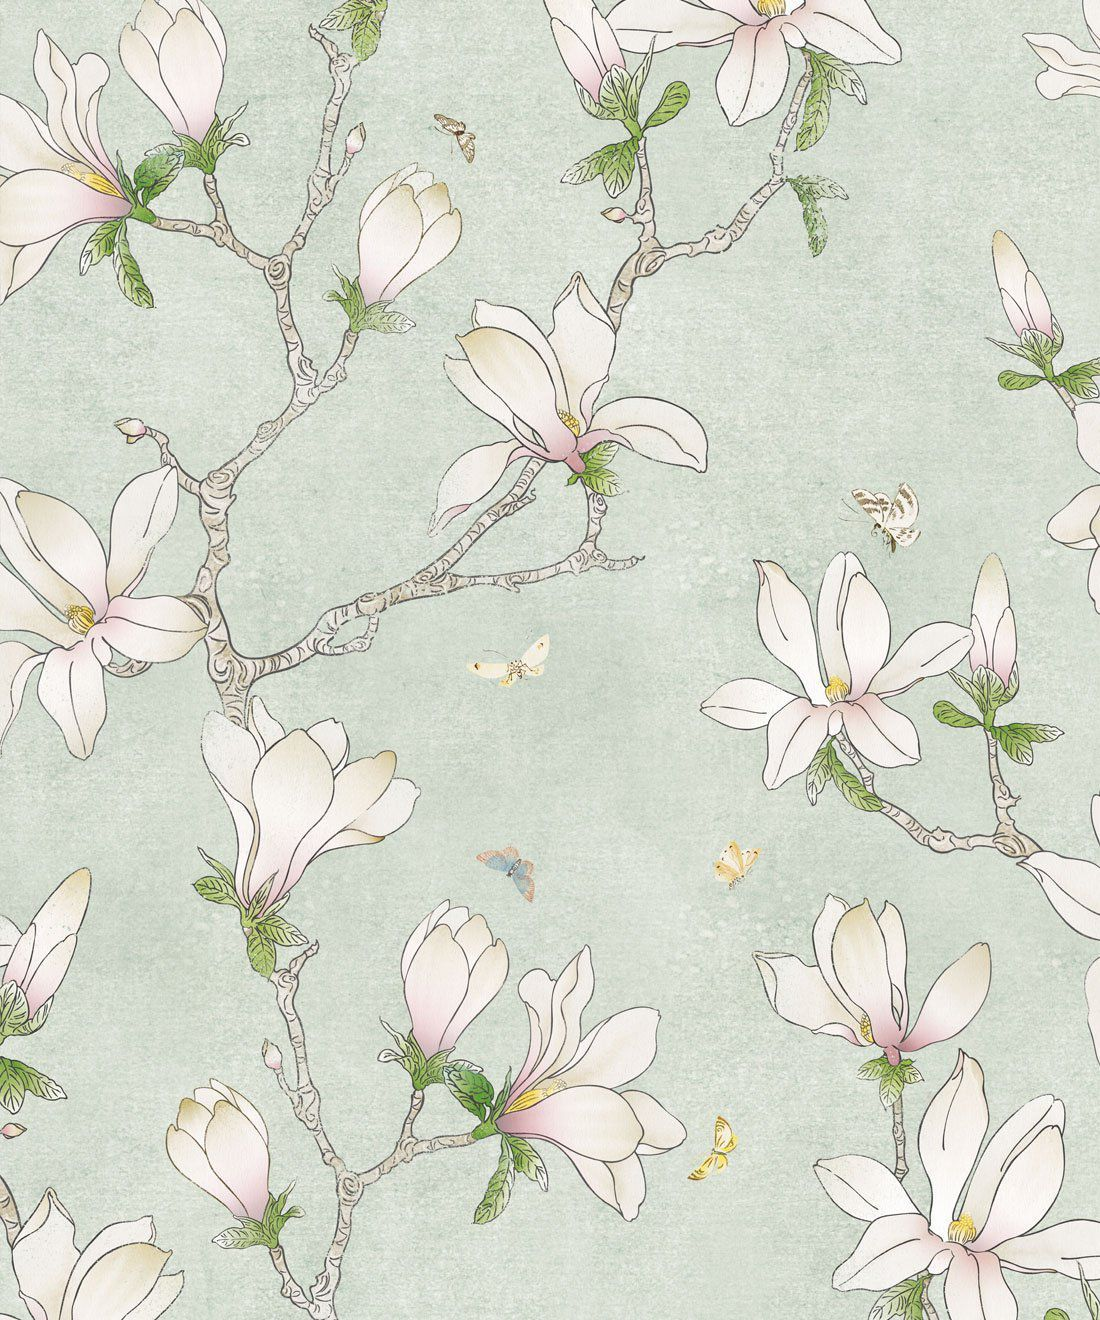 Removable Water-Activated Wallpaper Magnolia Flowers Flower Floral Botanical